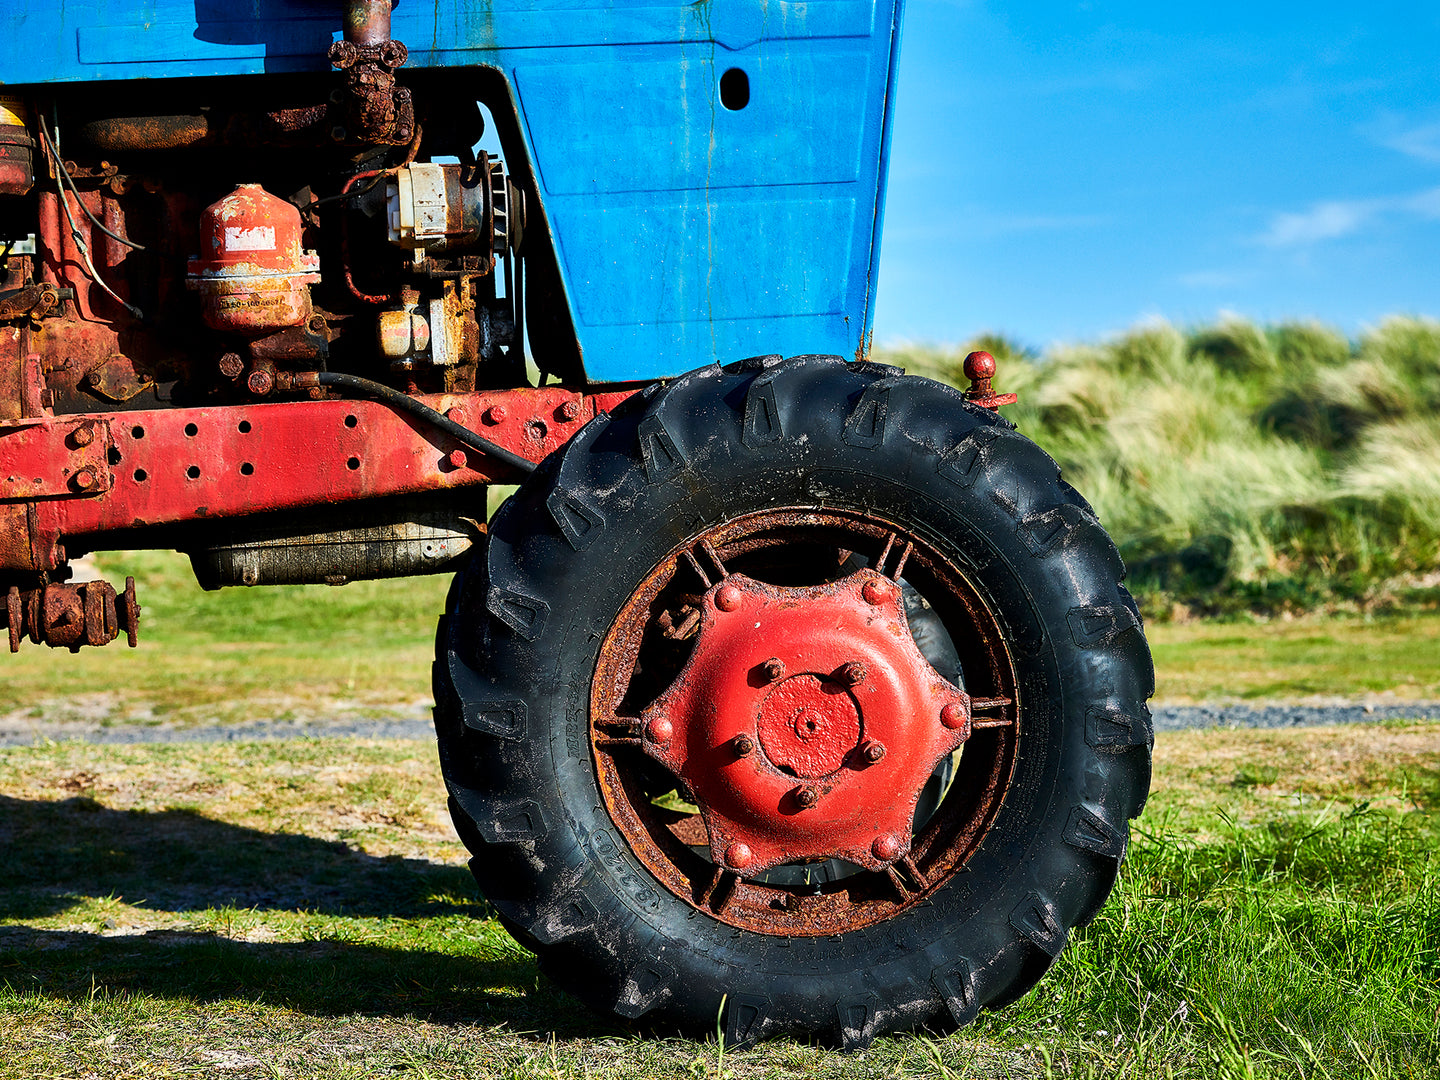 Beadnell Tractor, Northumberland coast, North East England